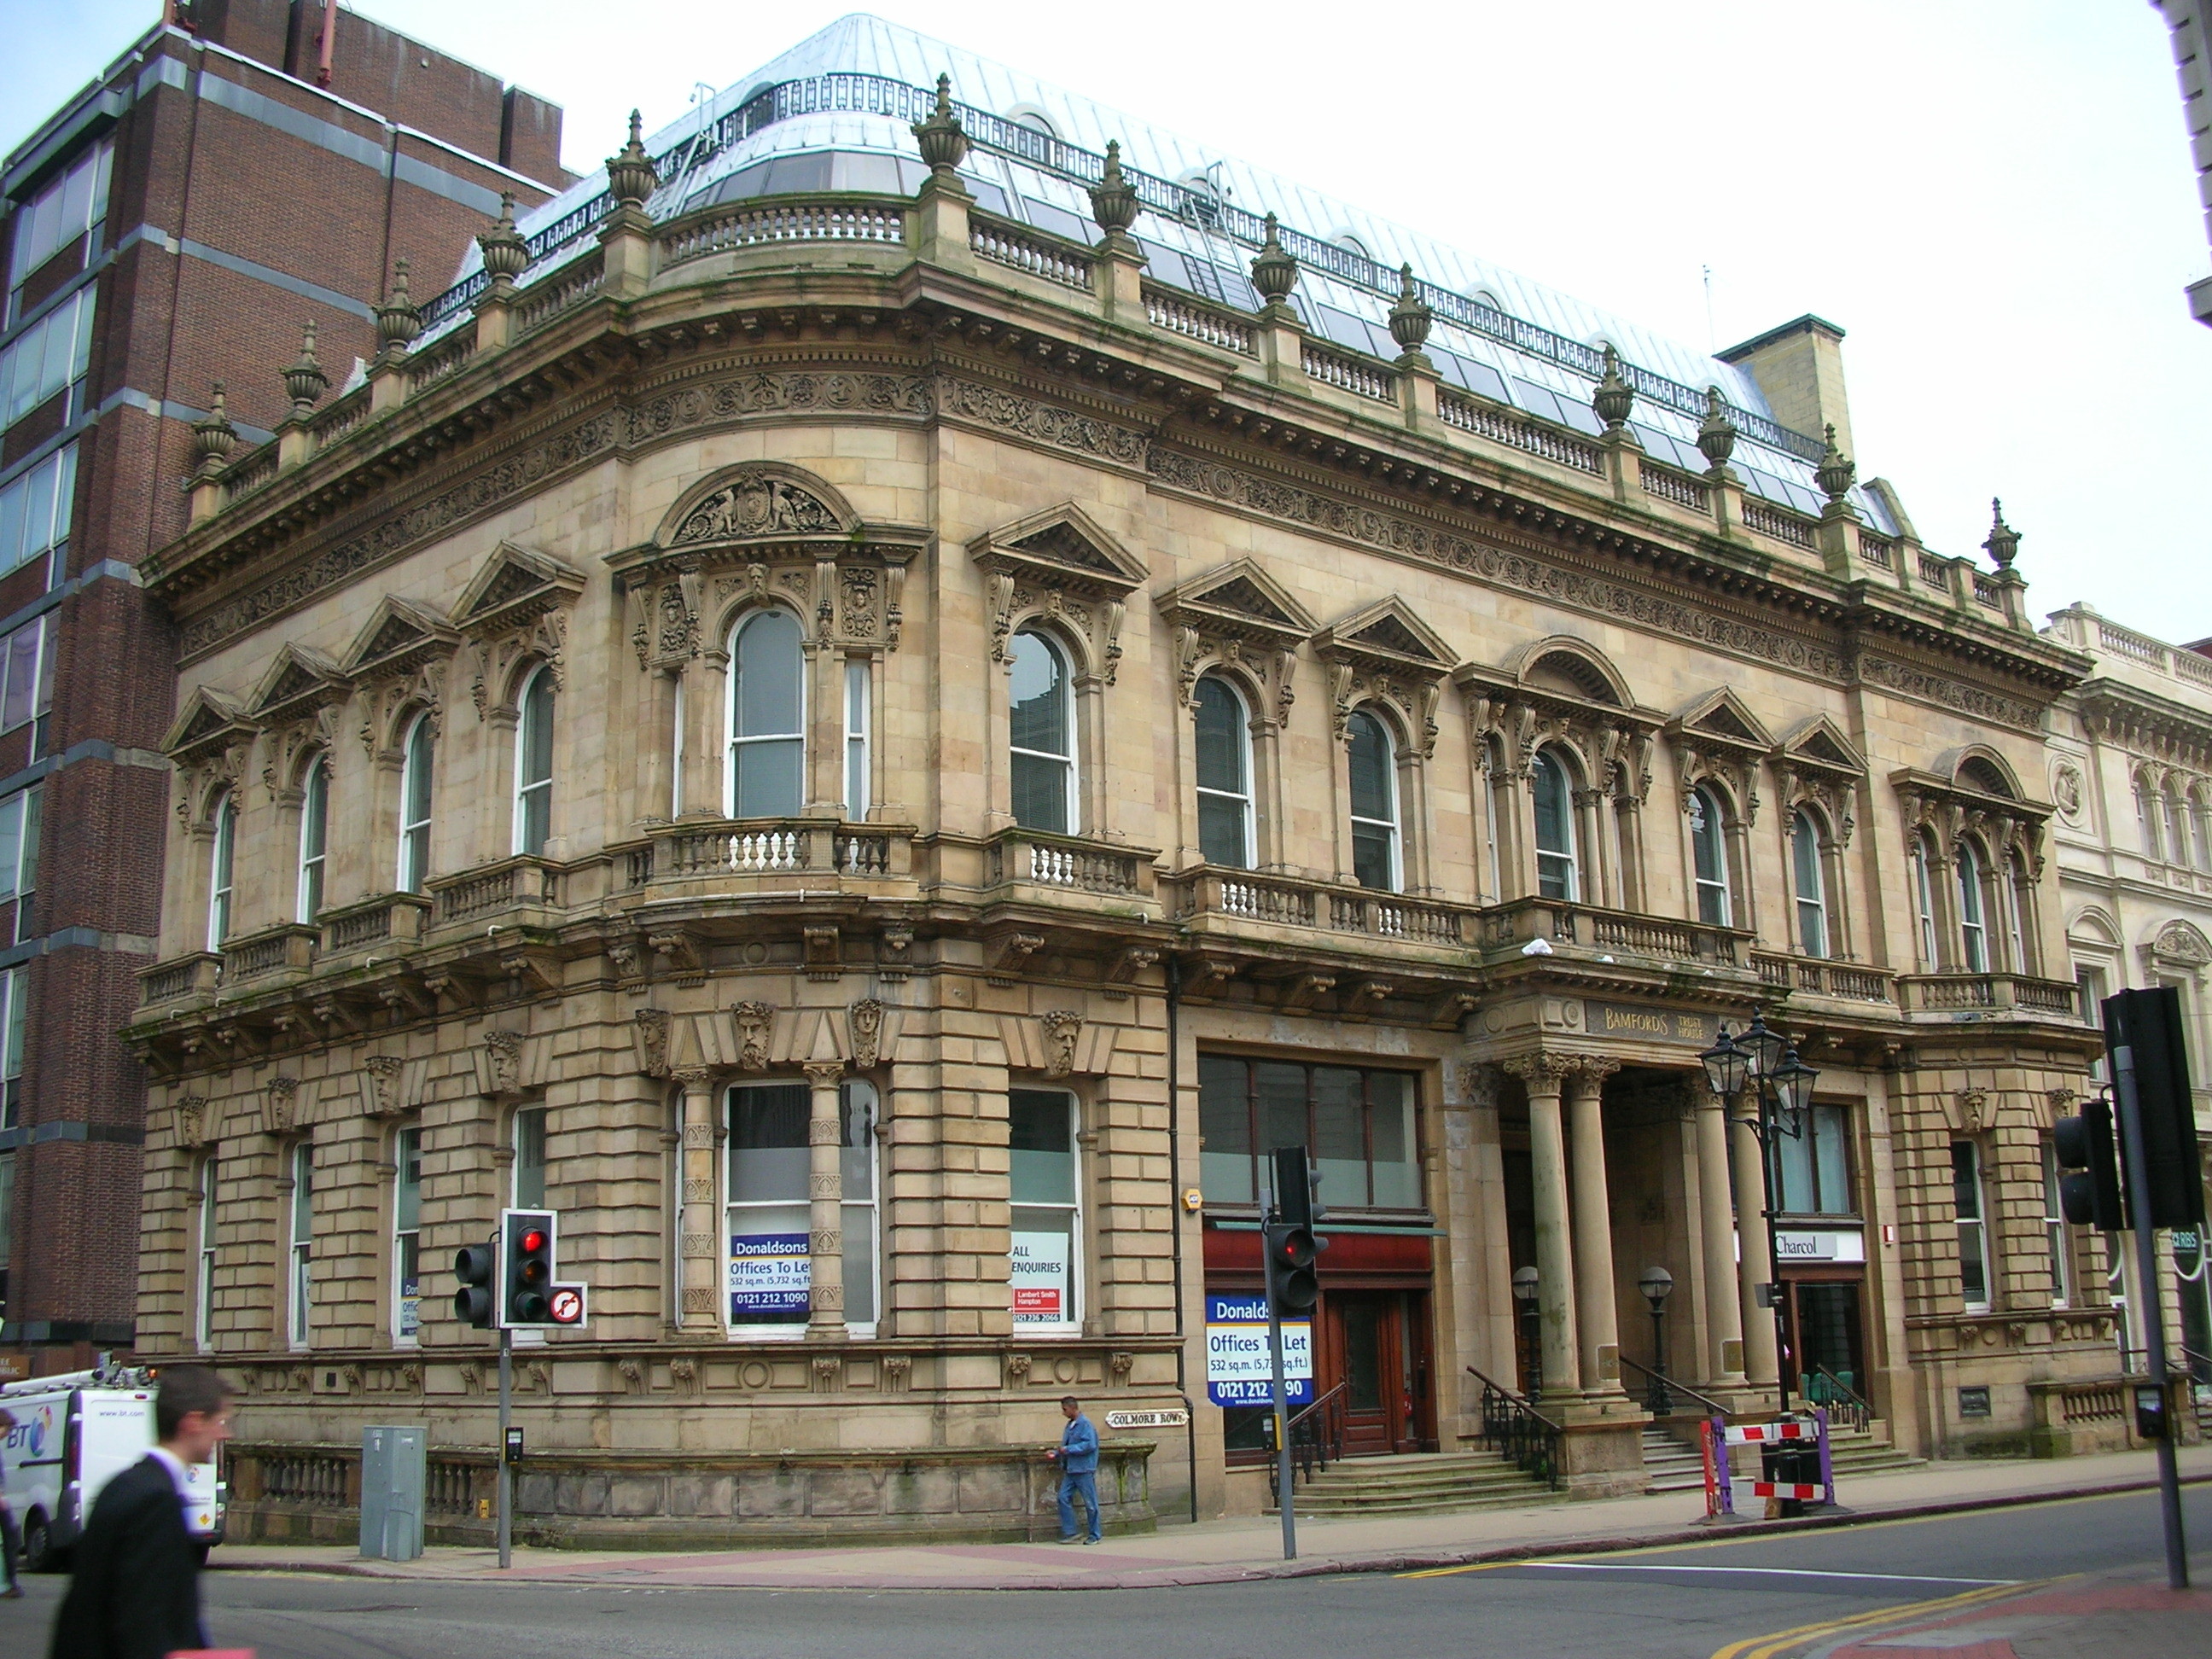 File:The Union Club Birmingham.jpg - Wikimedia Commons